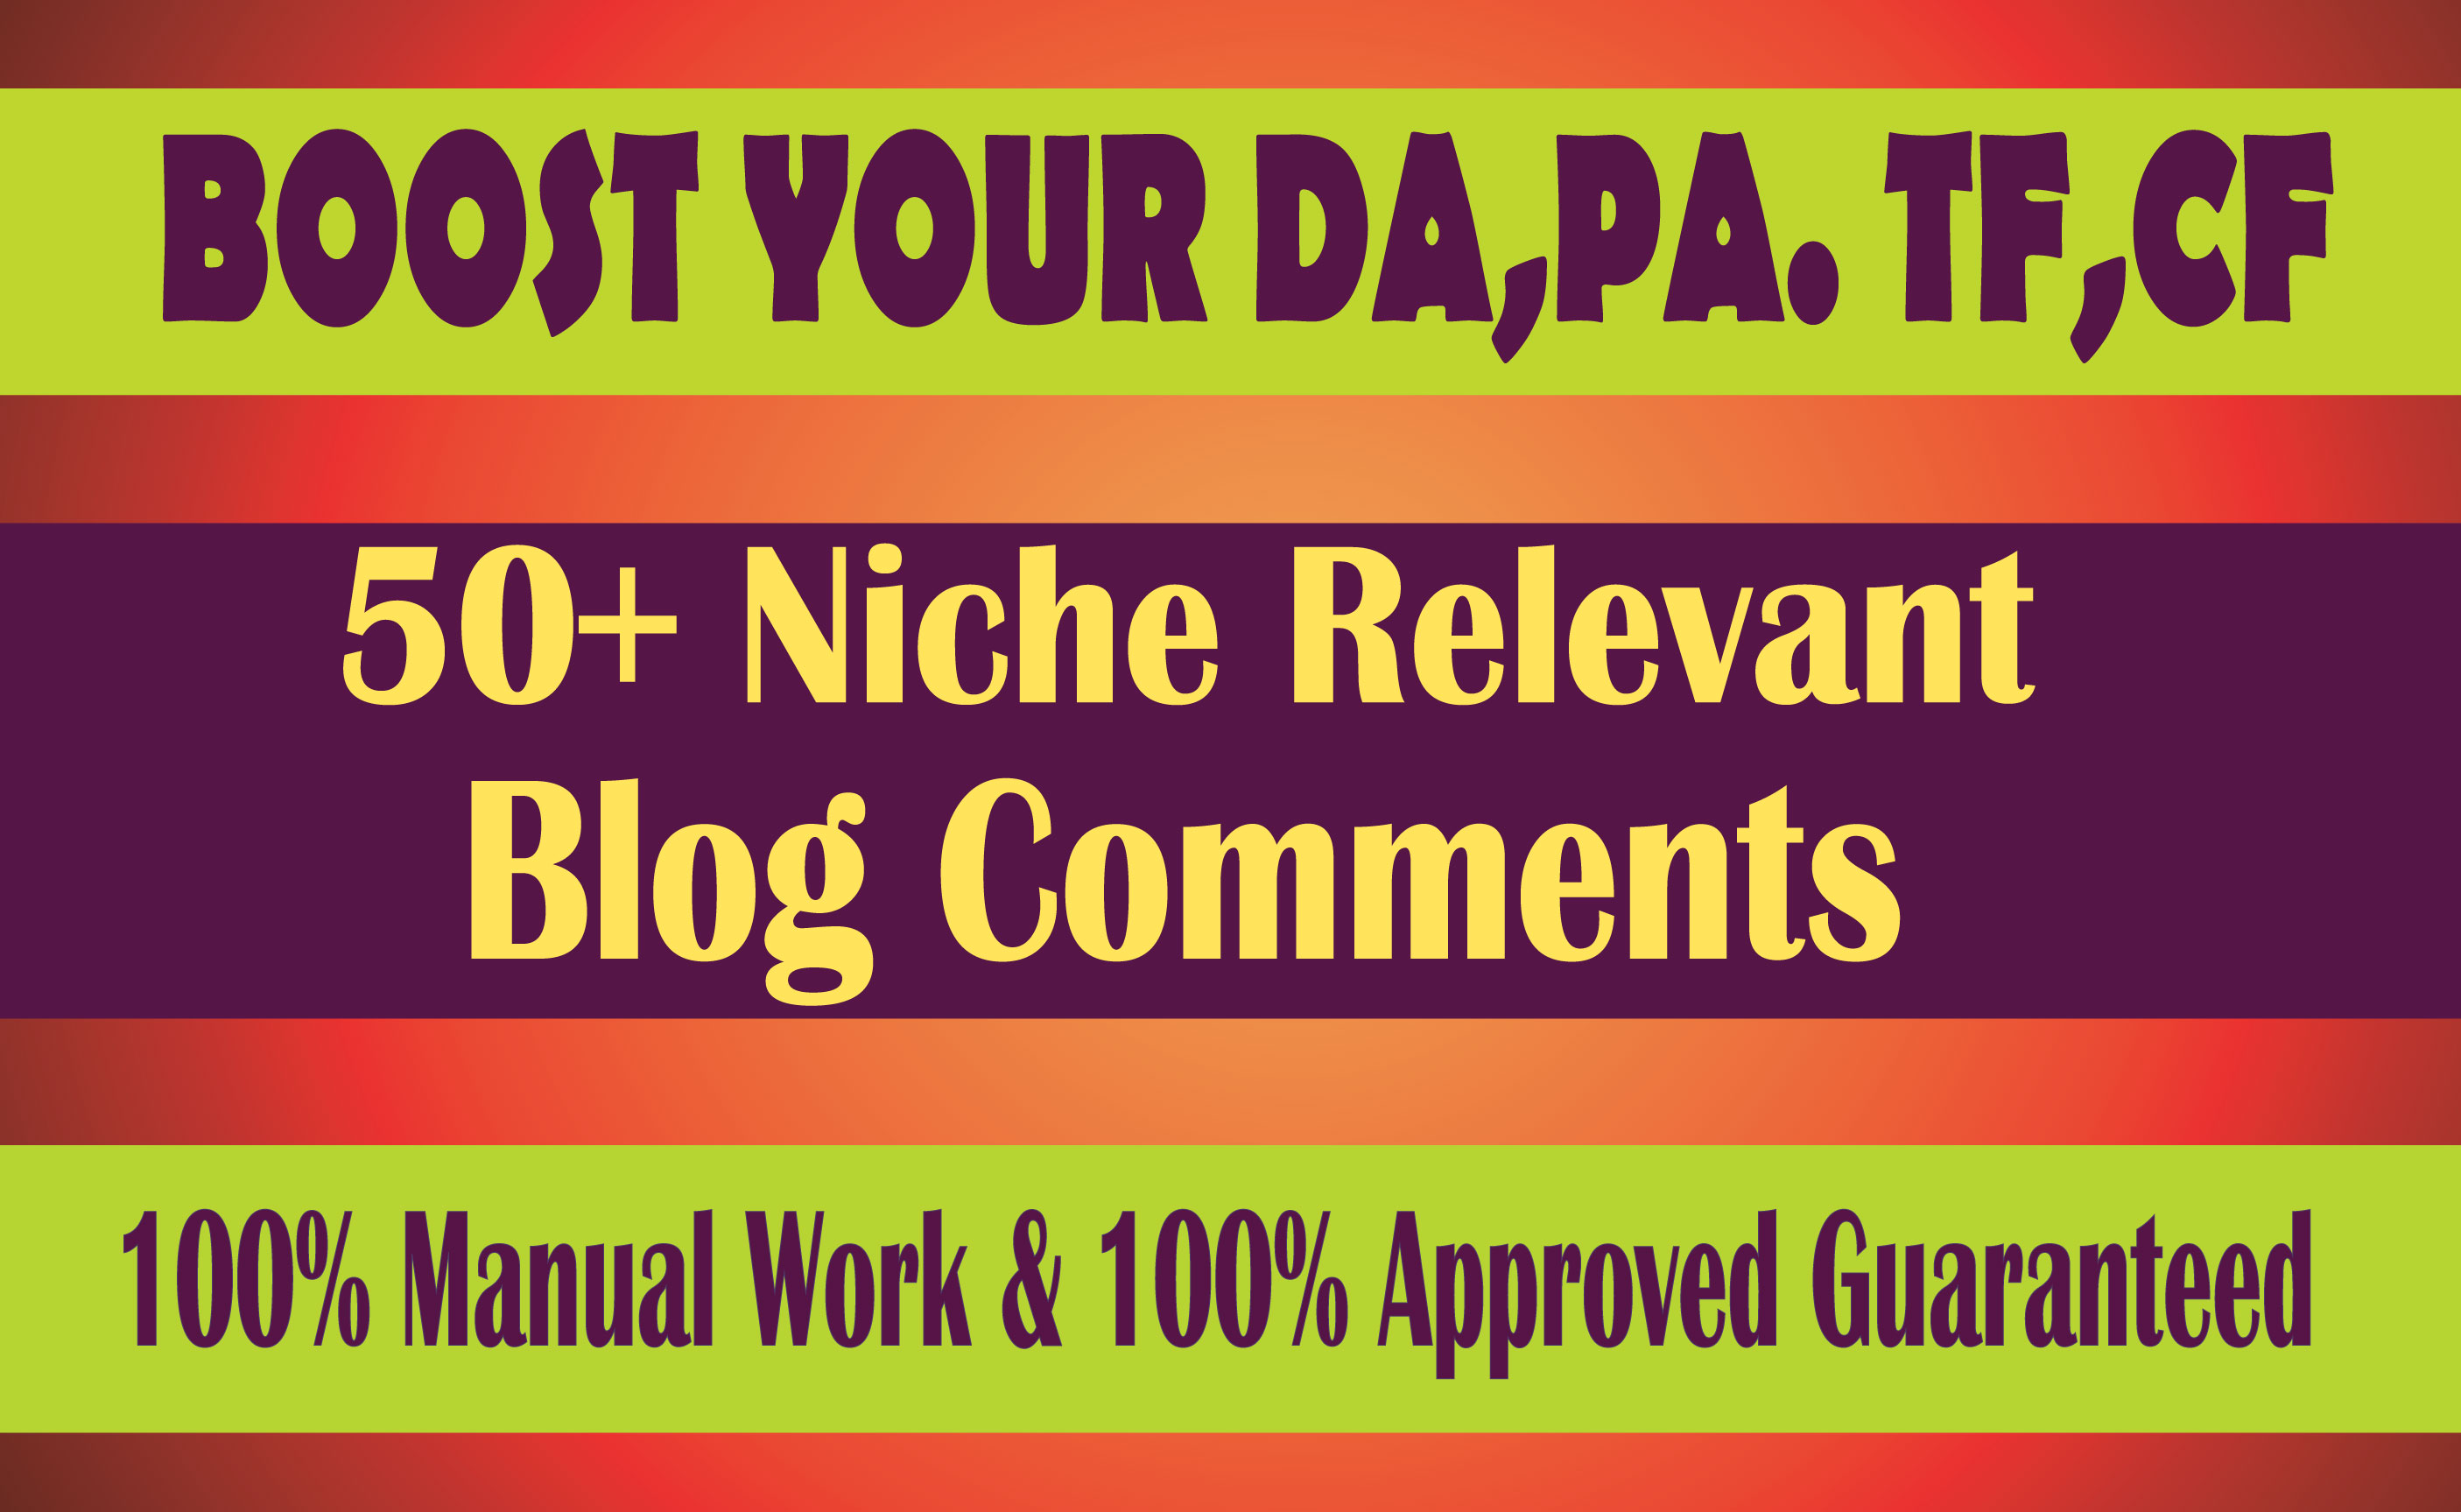 Niche Blog Comments with High Quality Guaranteed